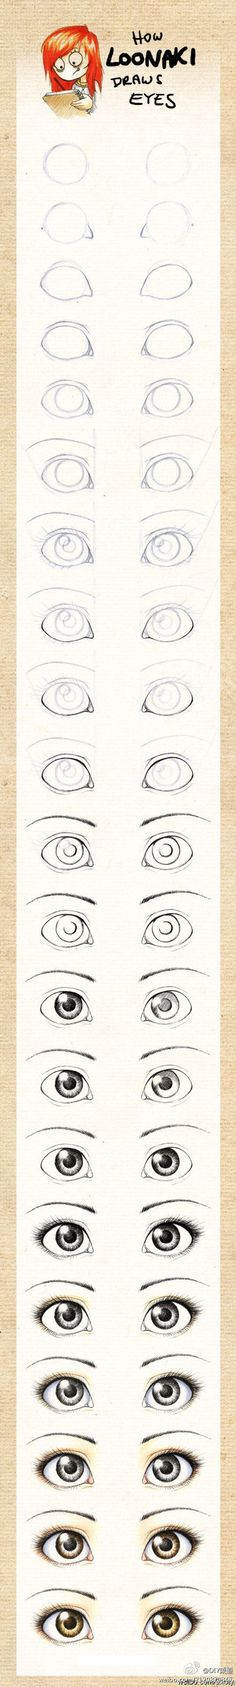 How to draw eyes! I really s Need to a work on this!                                                                                                                                                                                 More